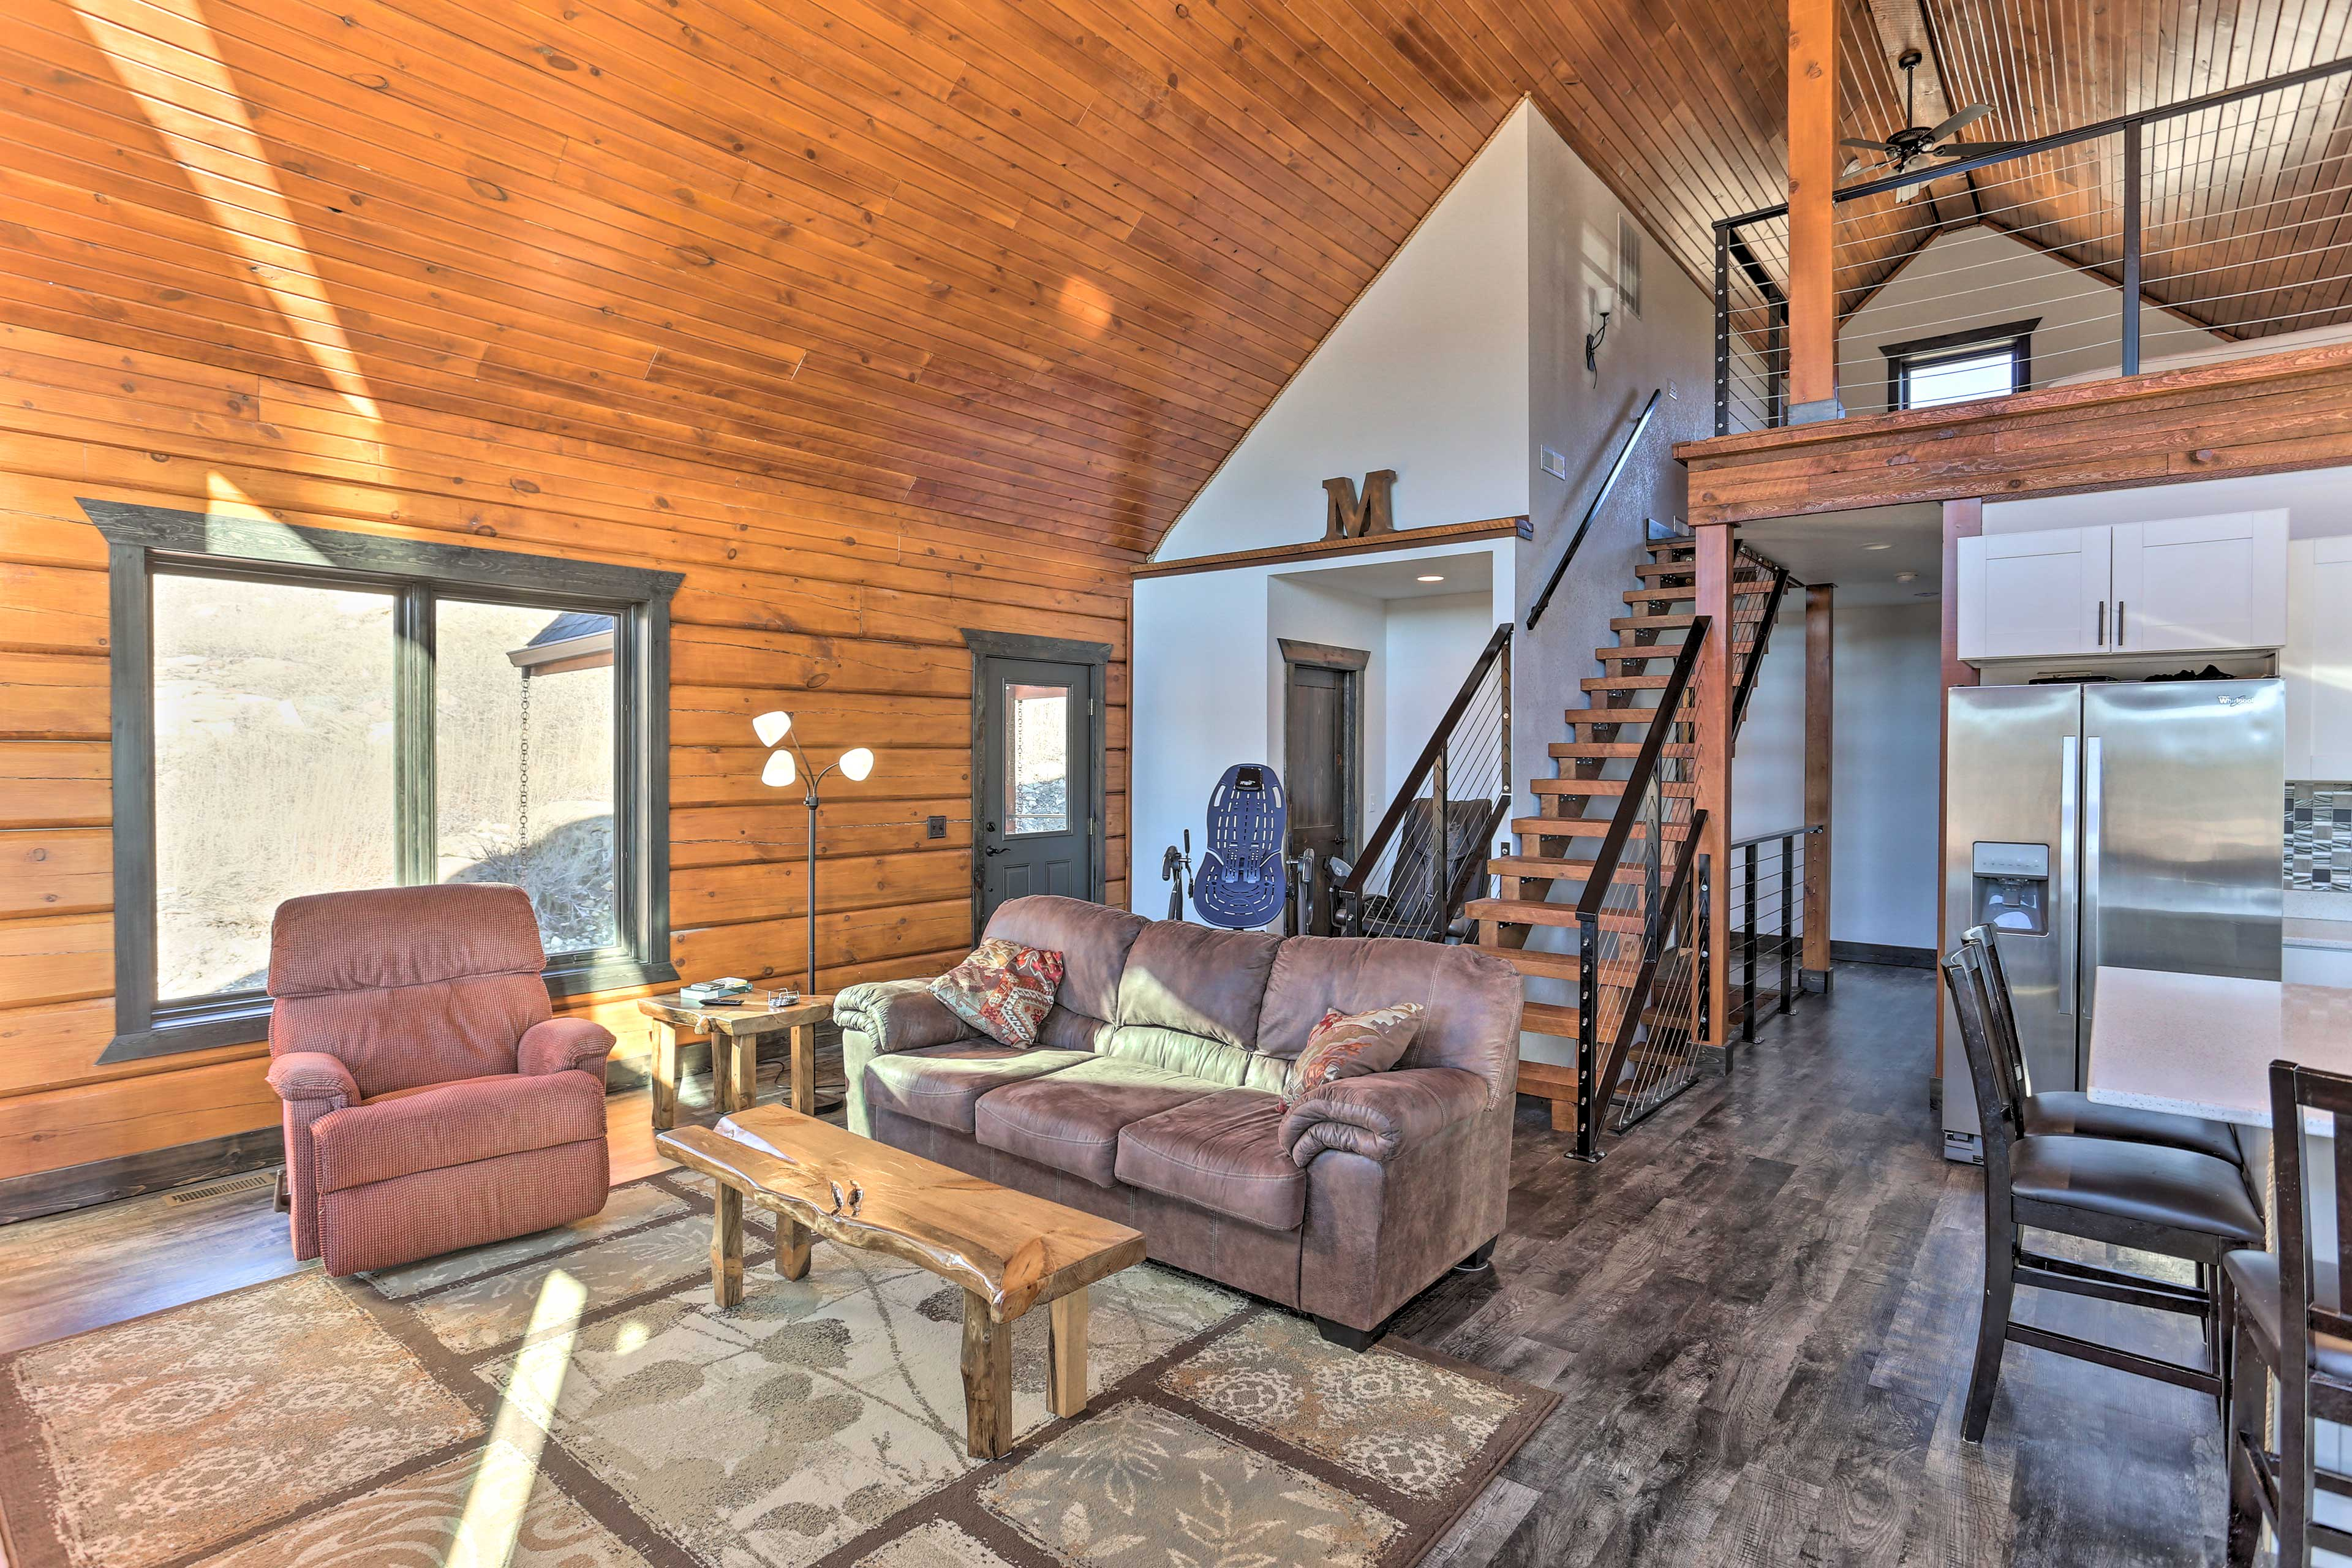 This 3-bedroom+loft cabin features 3.5 bathrooms for 8 guests.